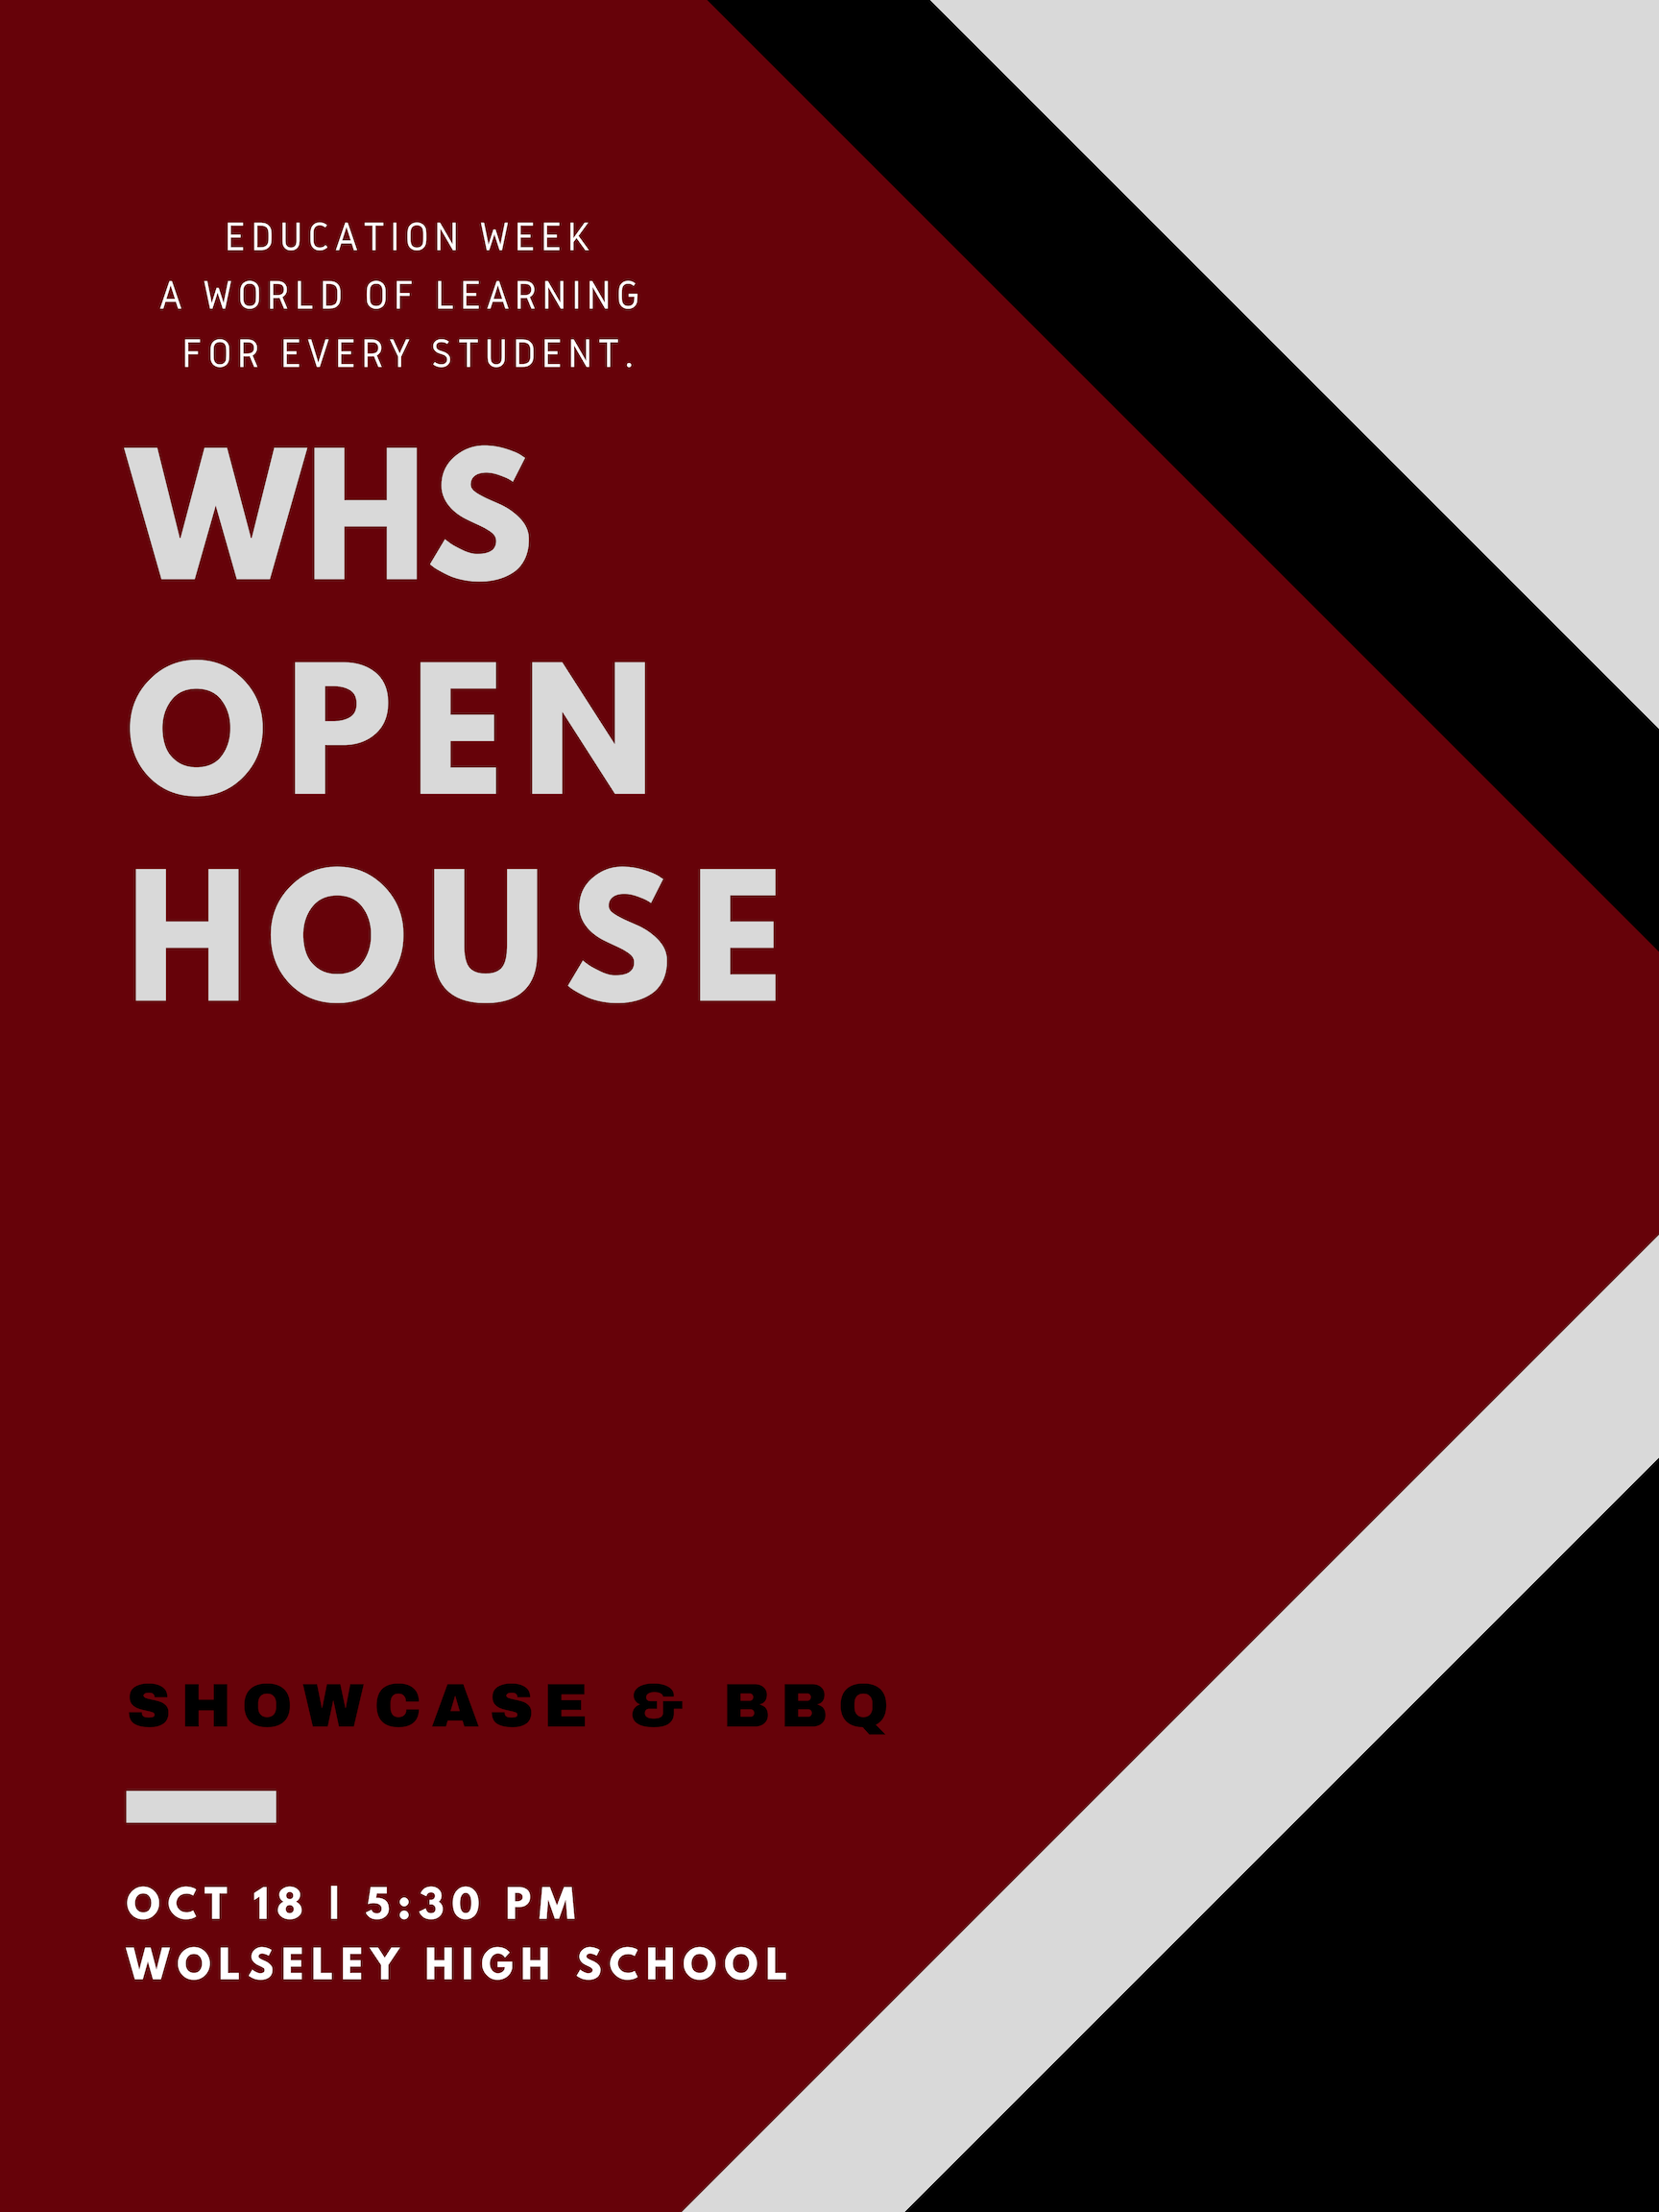 1819openhouse.png